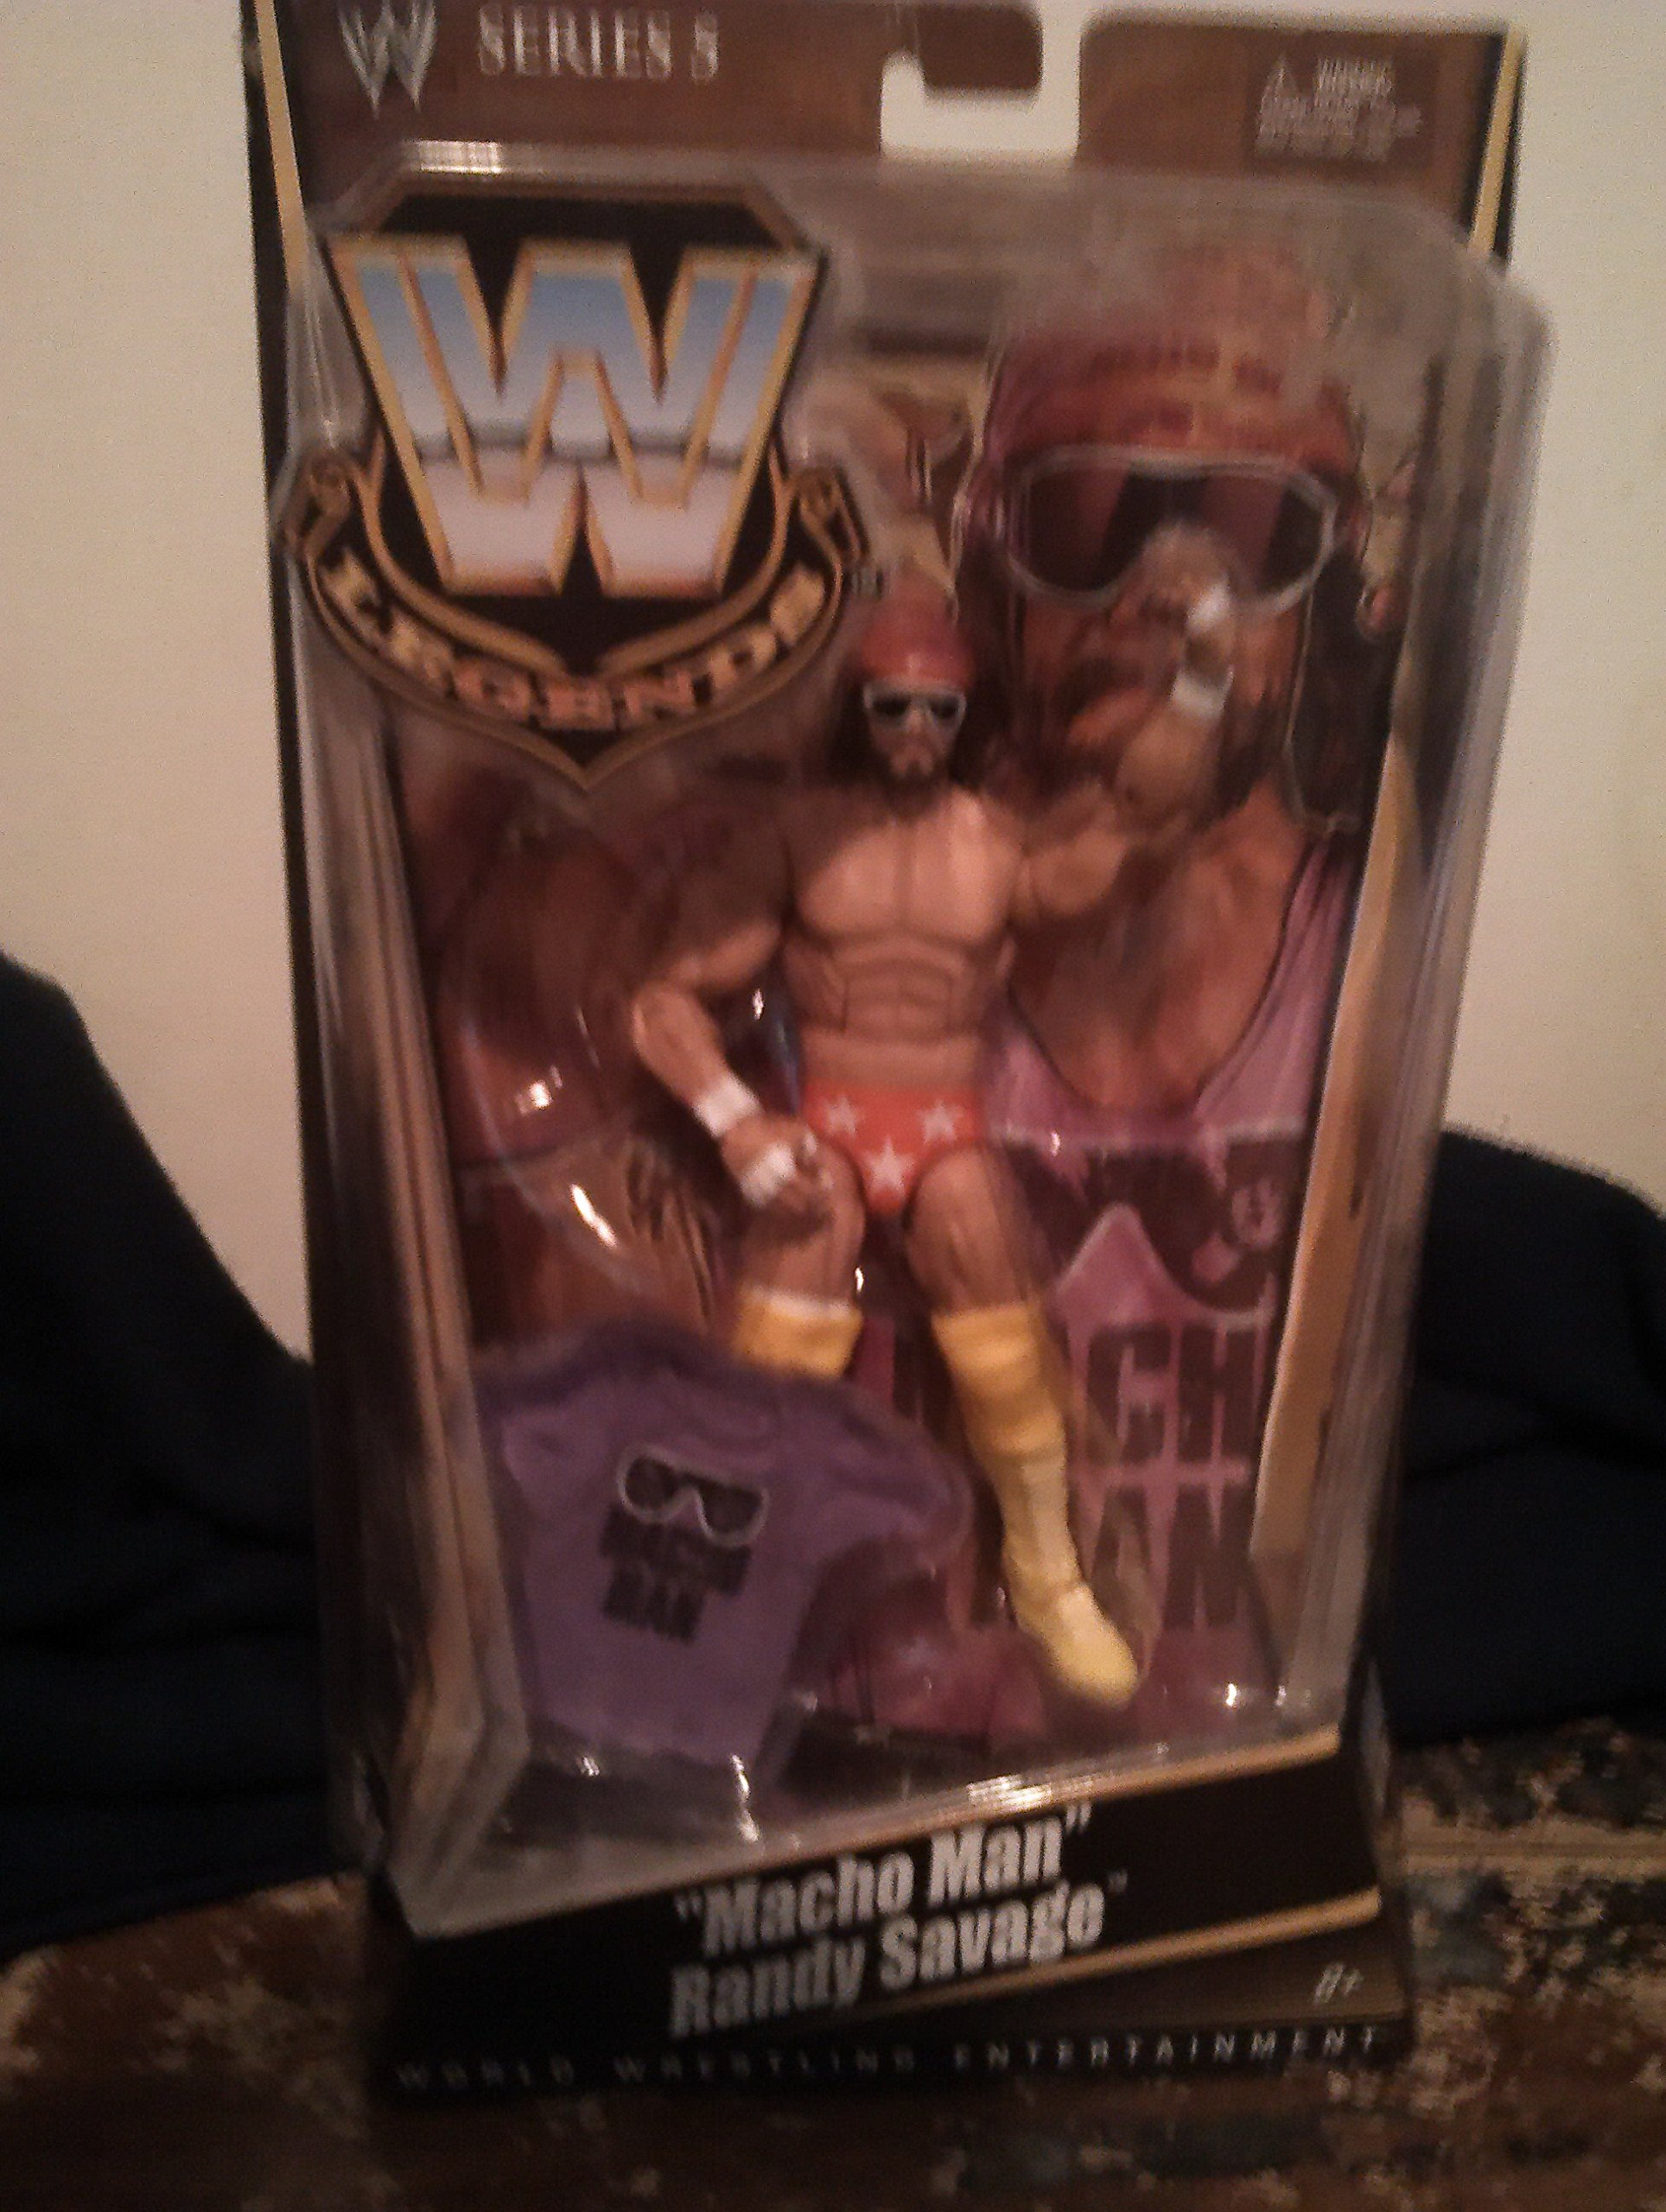 WWE Legends Macho Man Randy Savage Collector Figure Series #5 by Mattel